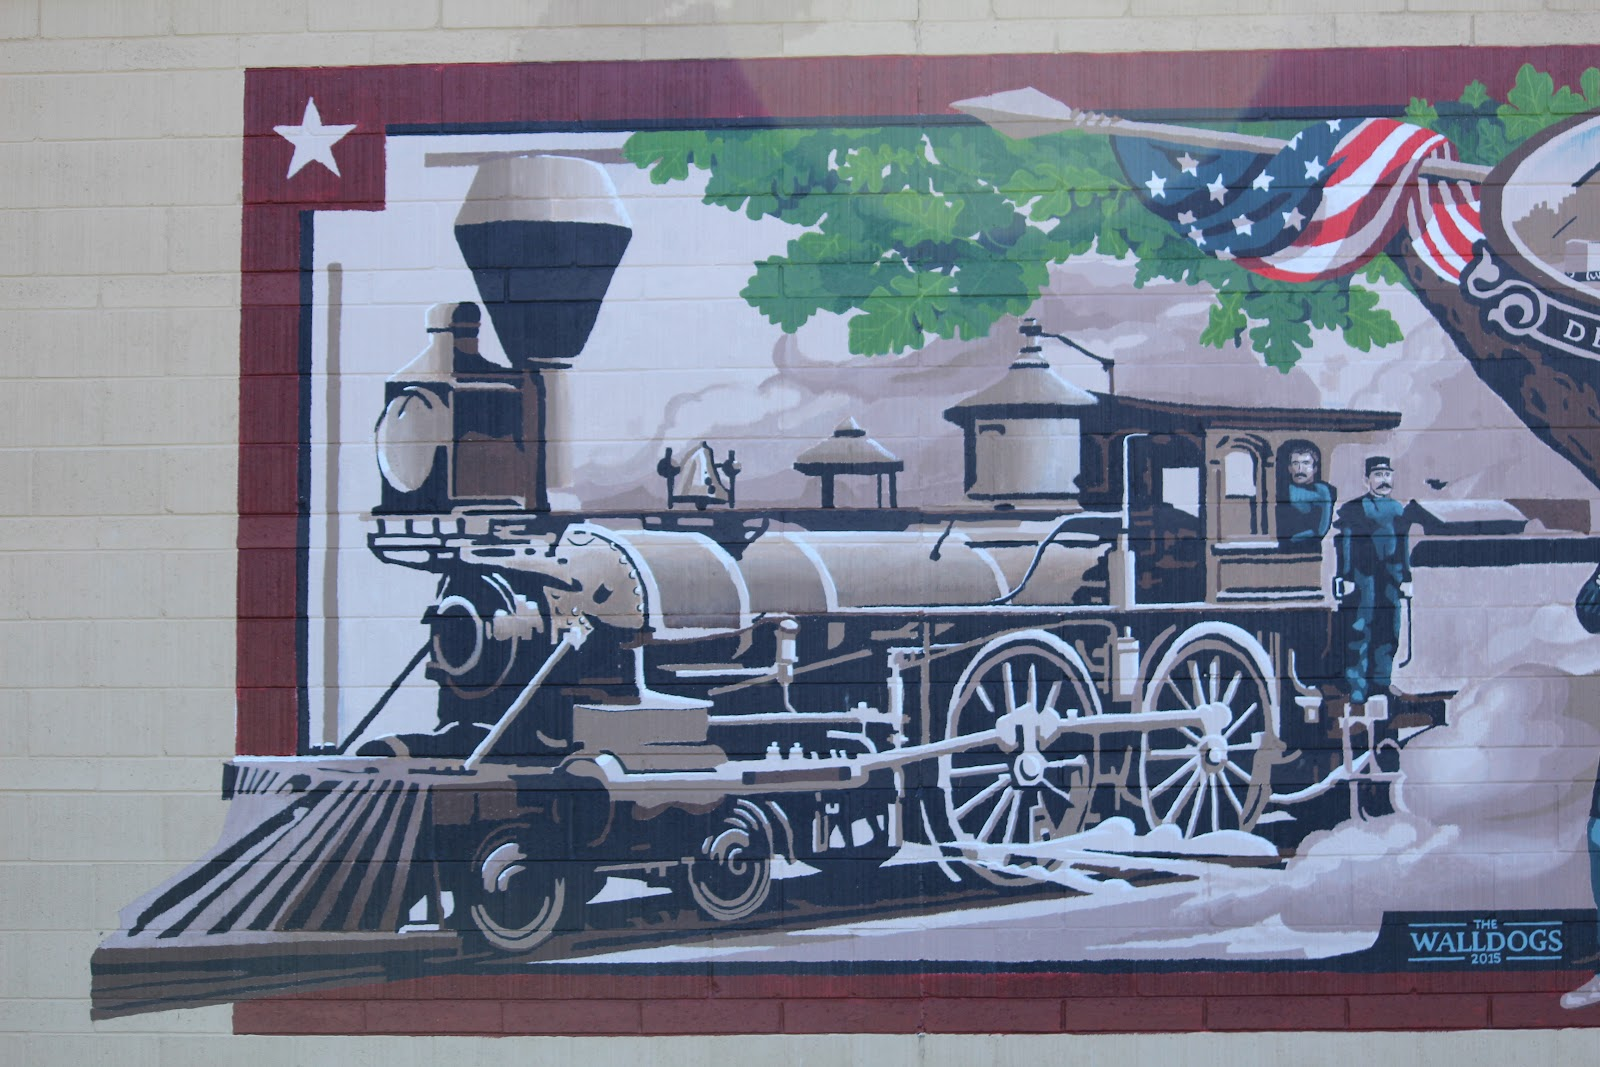 click here to view links to all delavan walldogs murals - Muster Depot